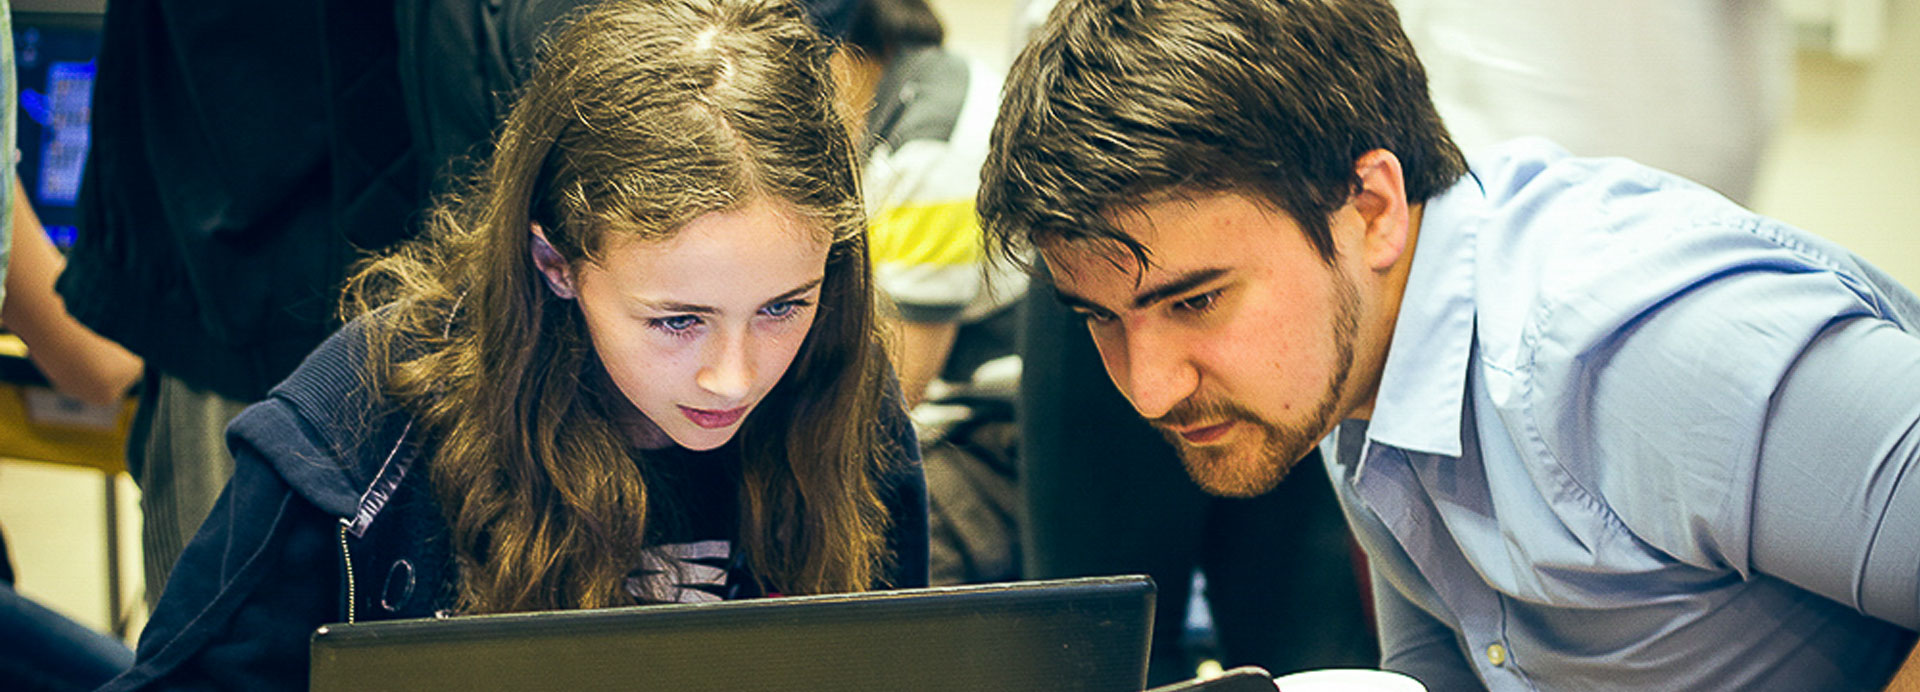 Coding For Kids & Teens